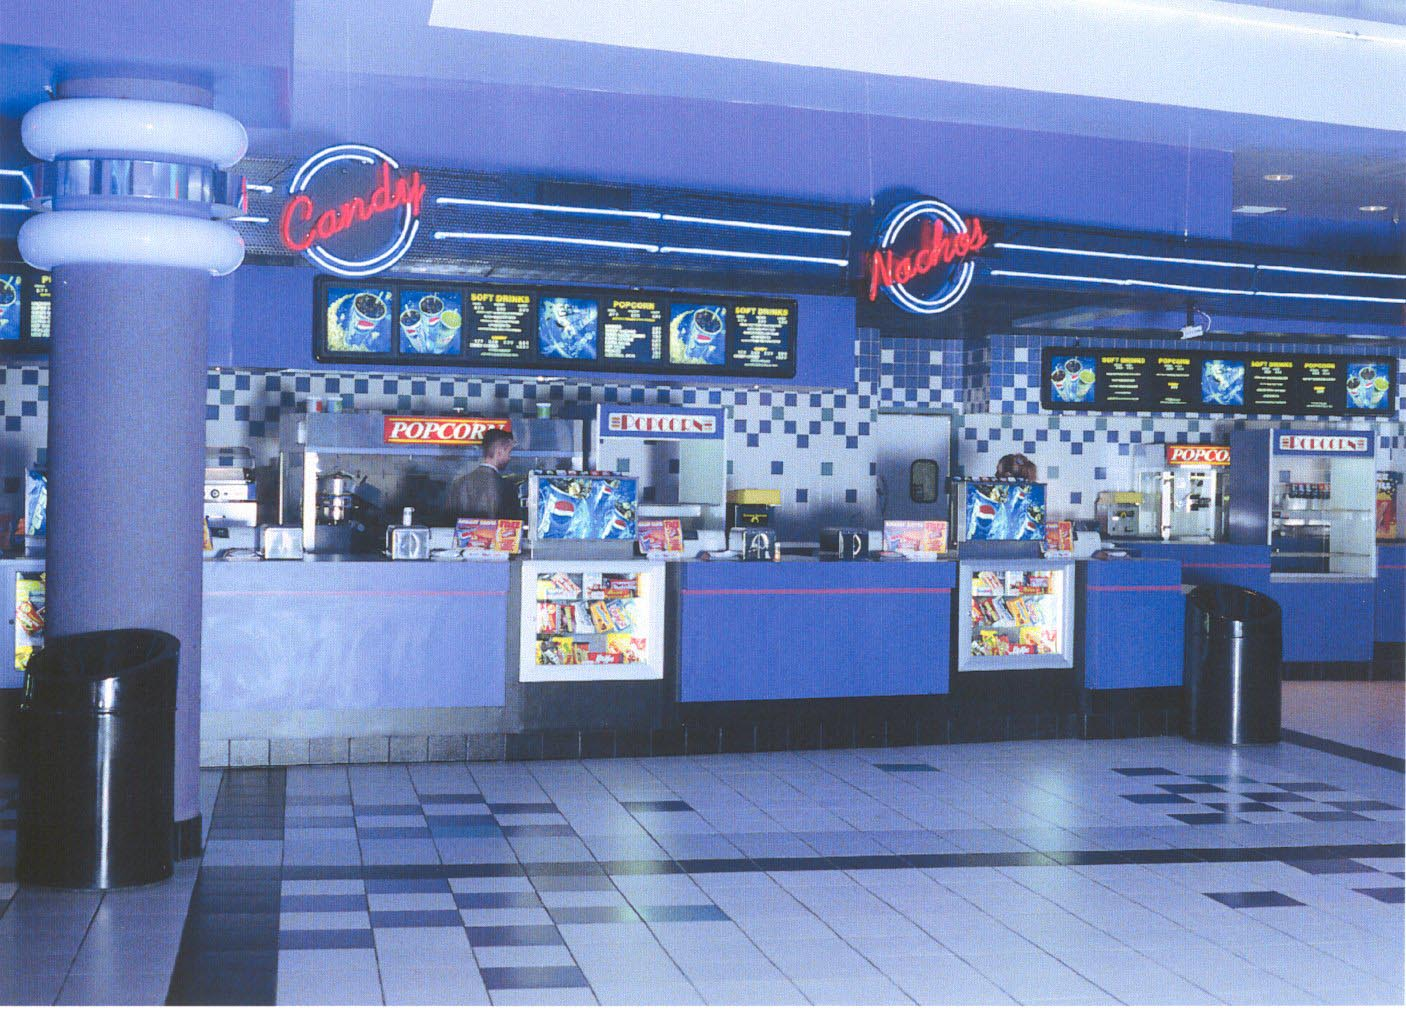 Regal Cinema concession area